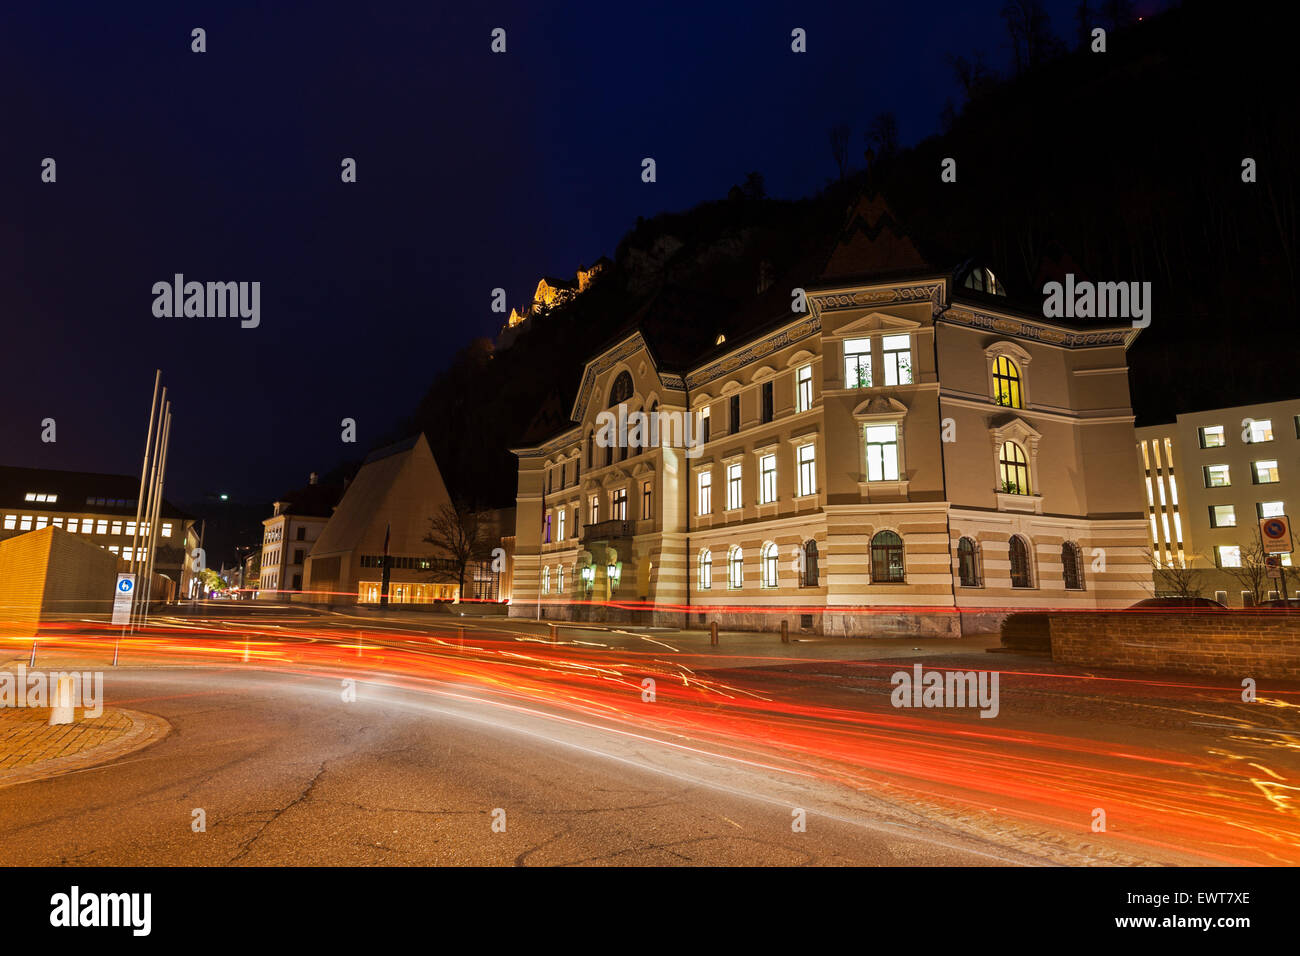 Parliament building in Vaduz during the evening traffic. Vaduz, Liechtenstein. - Stock Image